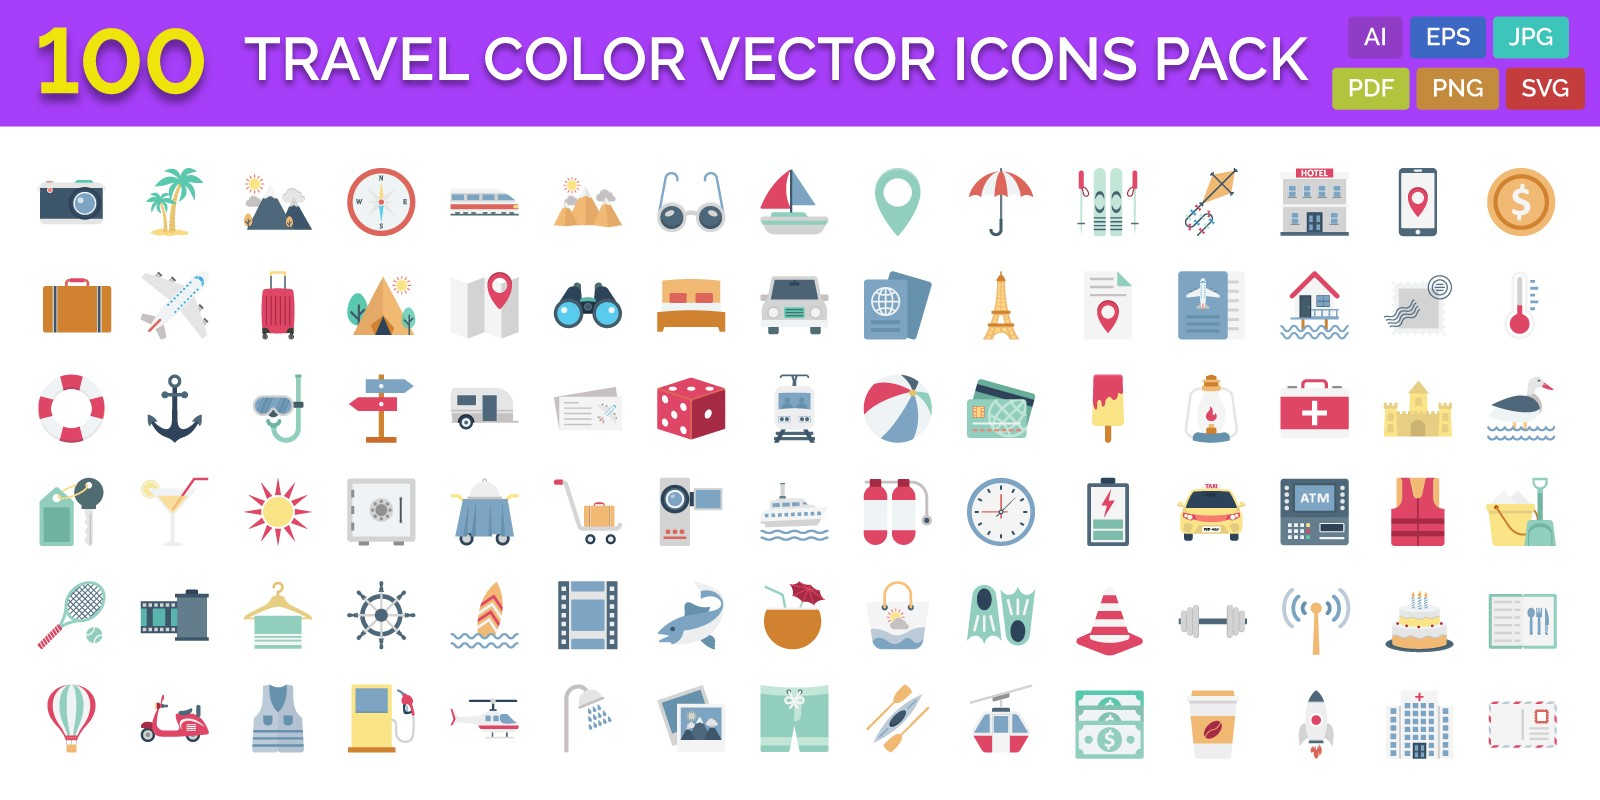 100 Travel Color Vector Icons Pack